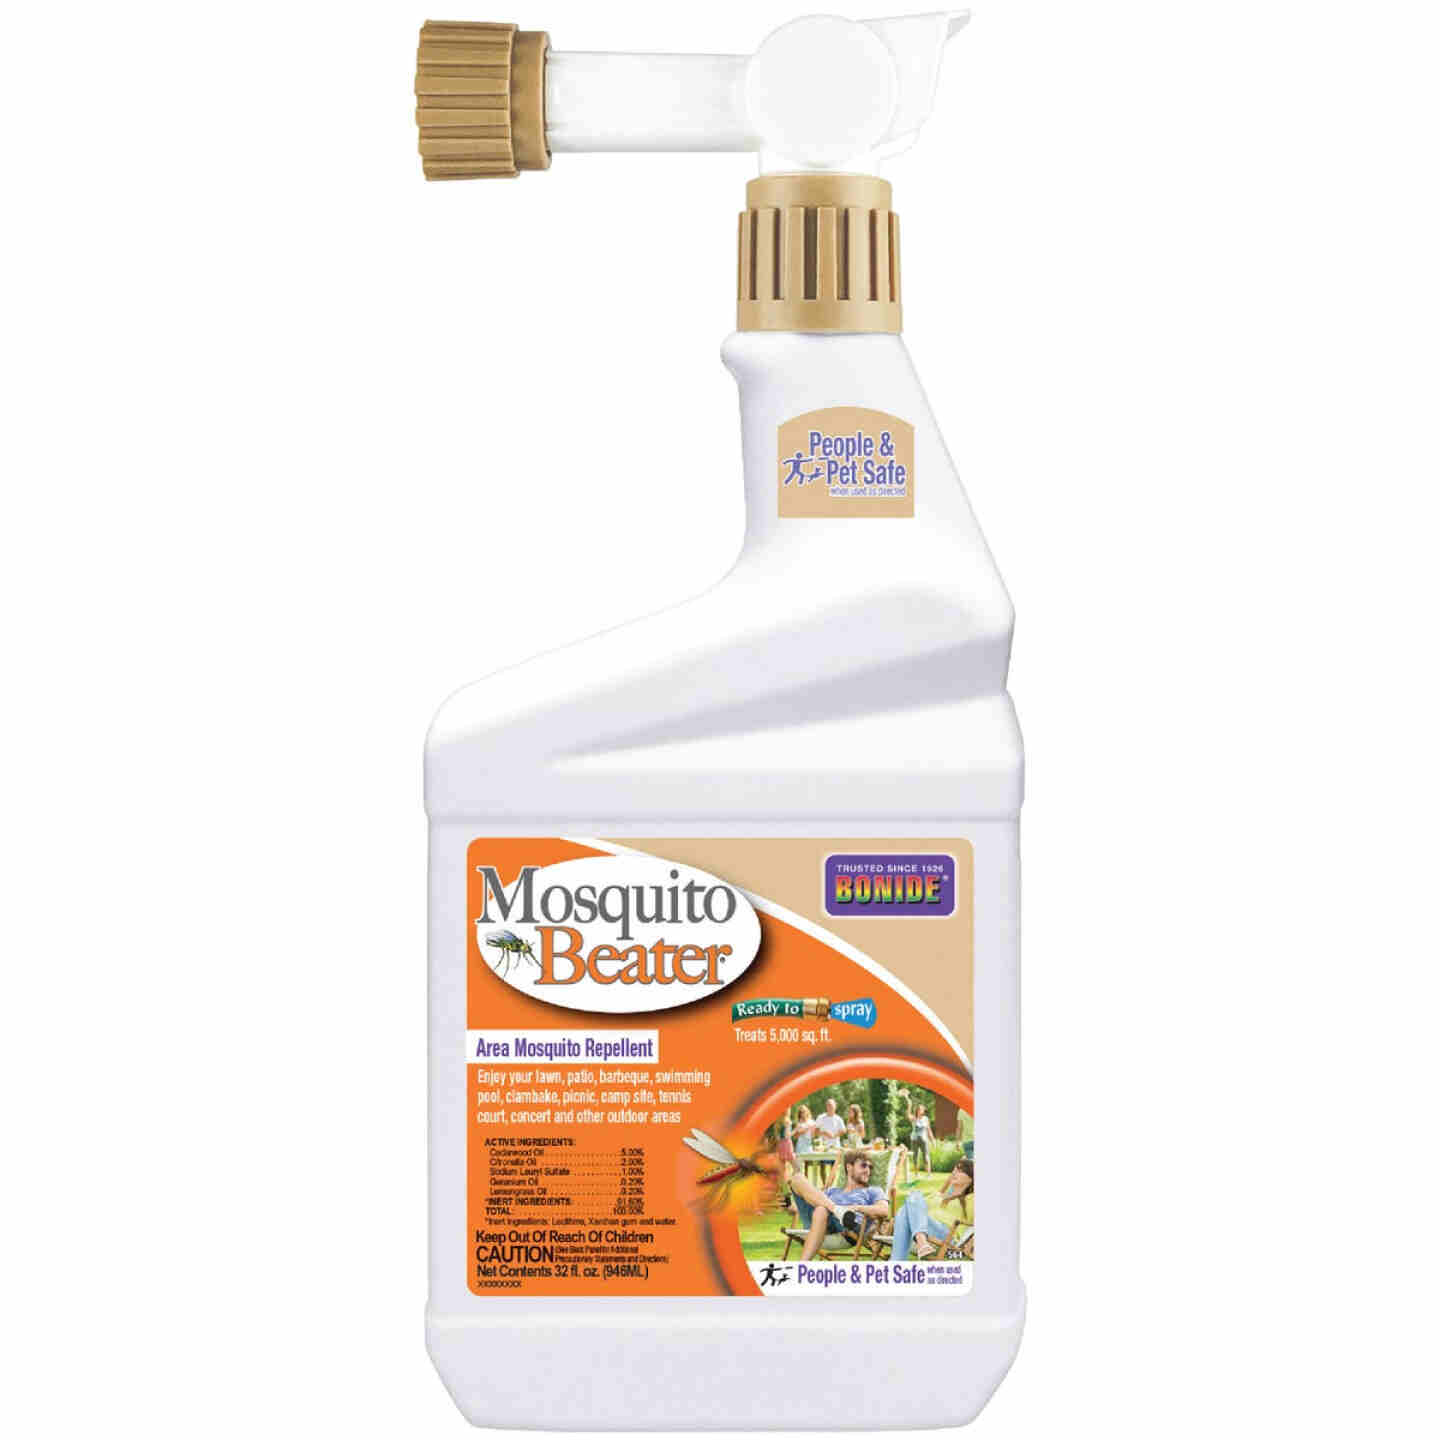 Bonide Mosquito Beater 1 Qt. Ready To Spray Hose End Insect Repellent Image 1